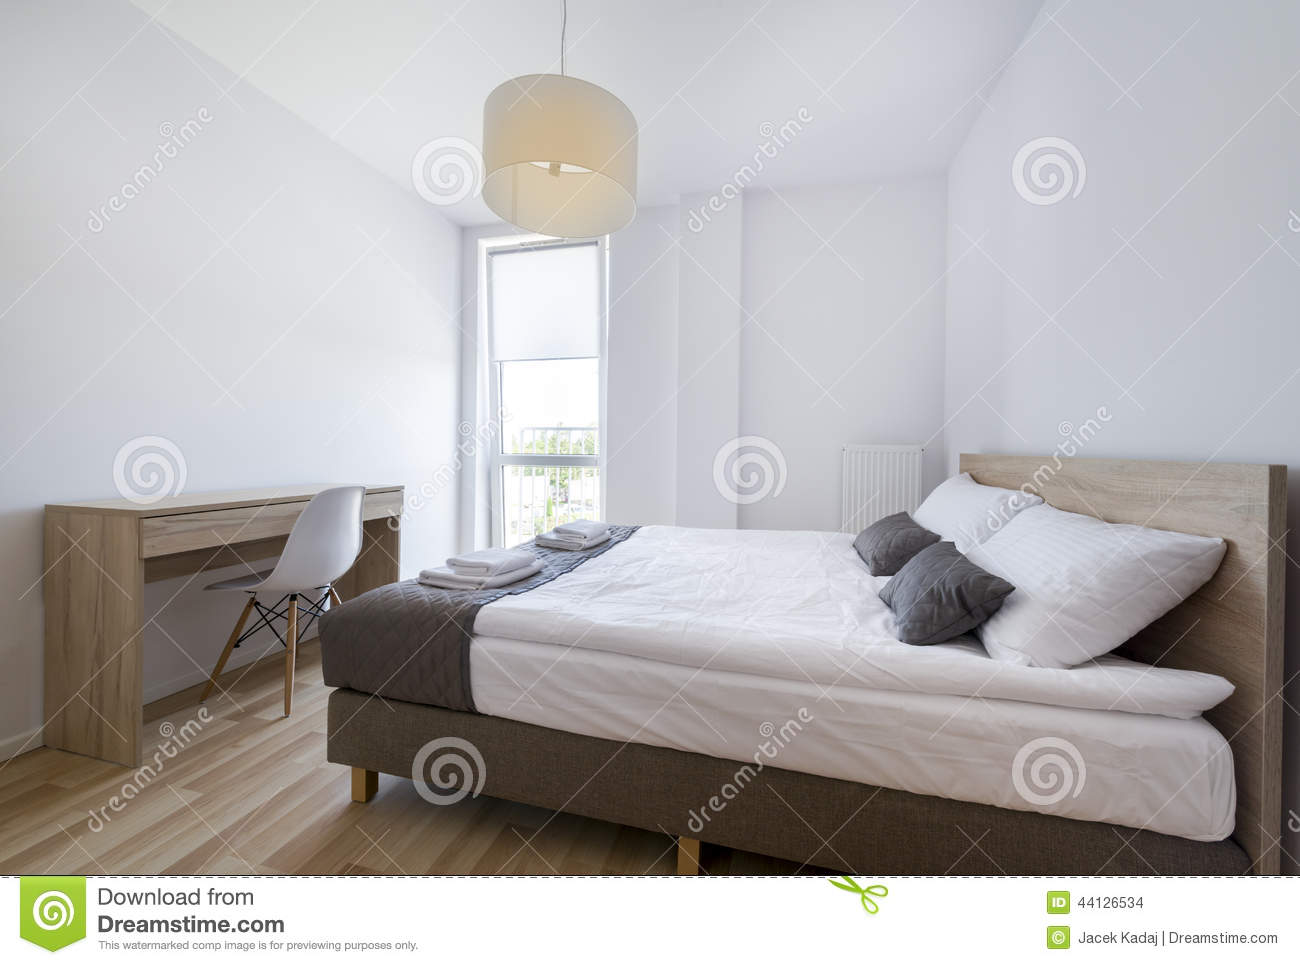 chambre coucher moderne dans la couleur blanche et beige photo stock image 44126534. Black Bedroom Furniture Sets. Home Design Ideas